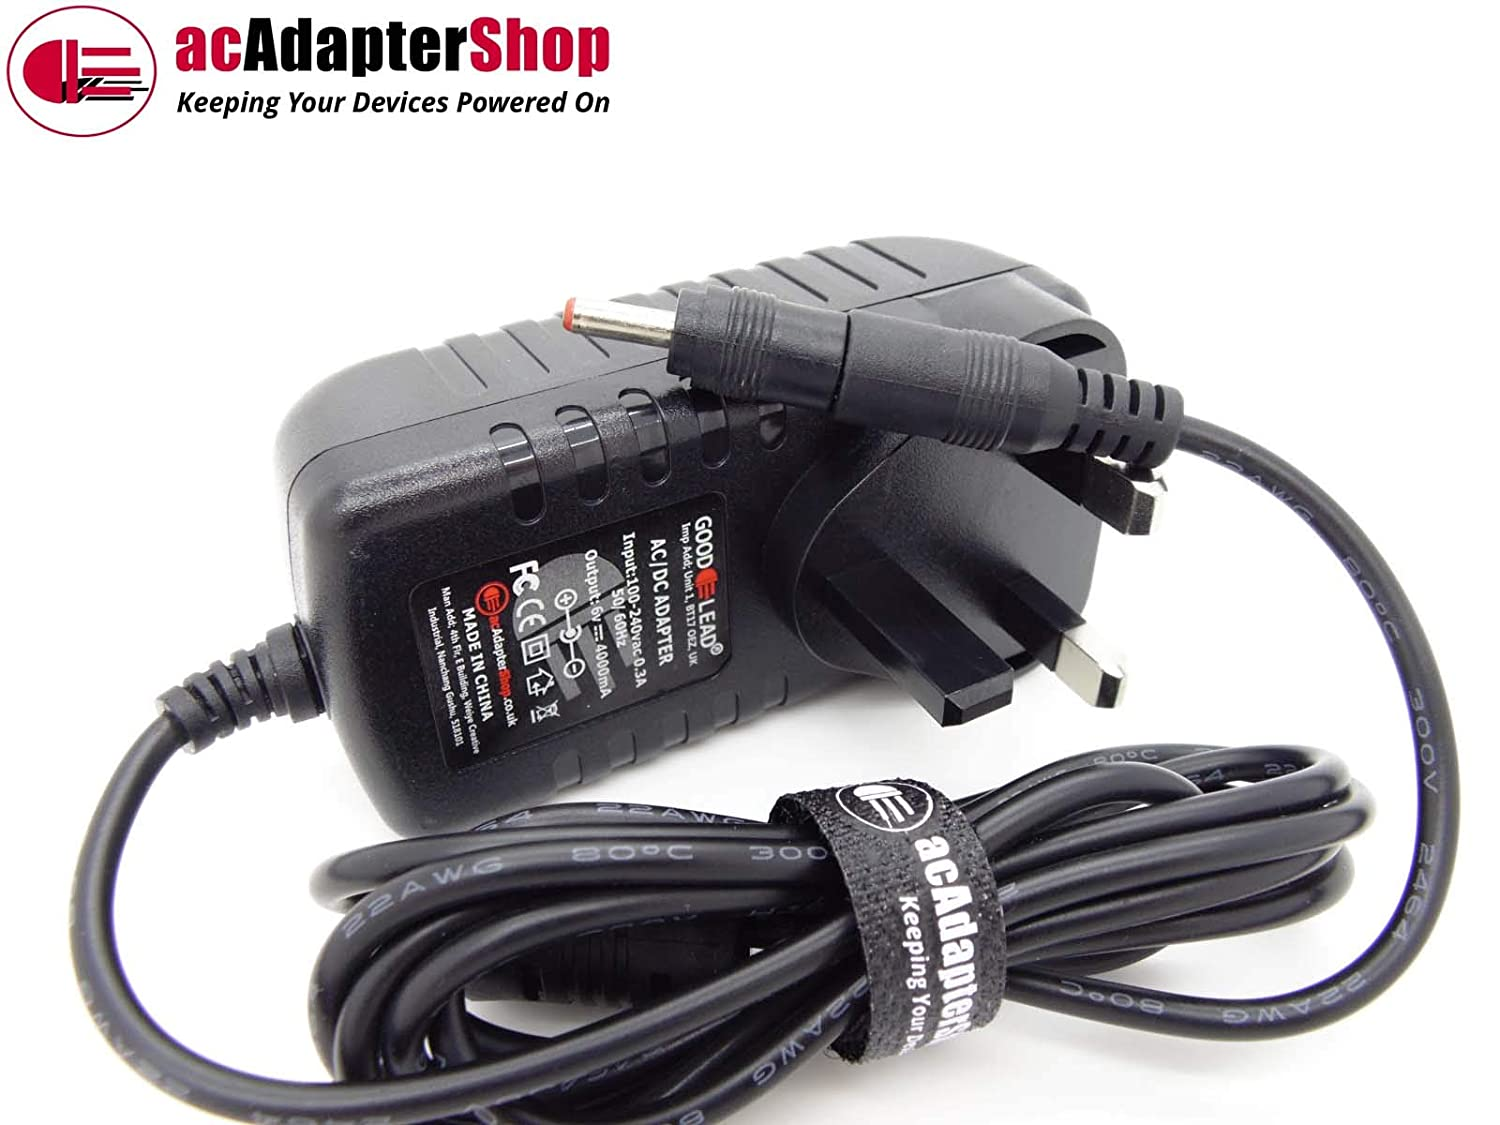 GOOD LEAD Replacement AC Adaptor 6V 3A 6 0V 3 0A ES011 X060300XYB Virgin Telly Tablet